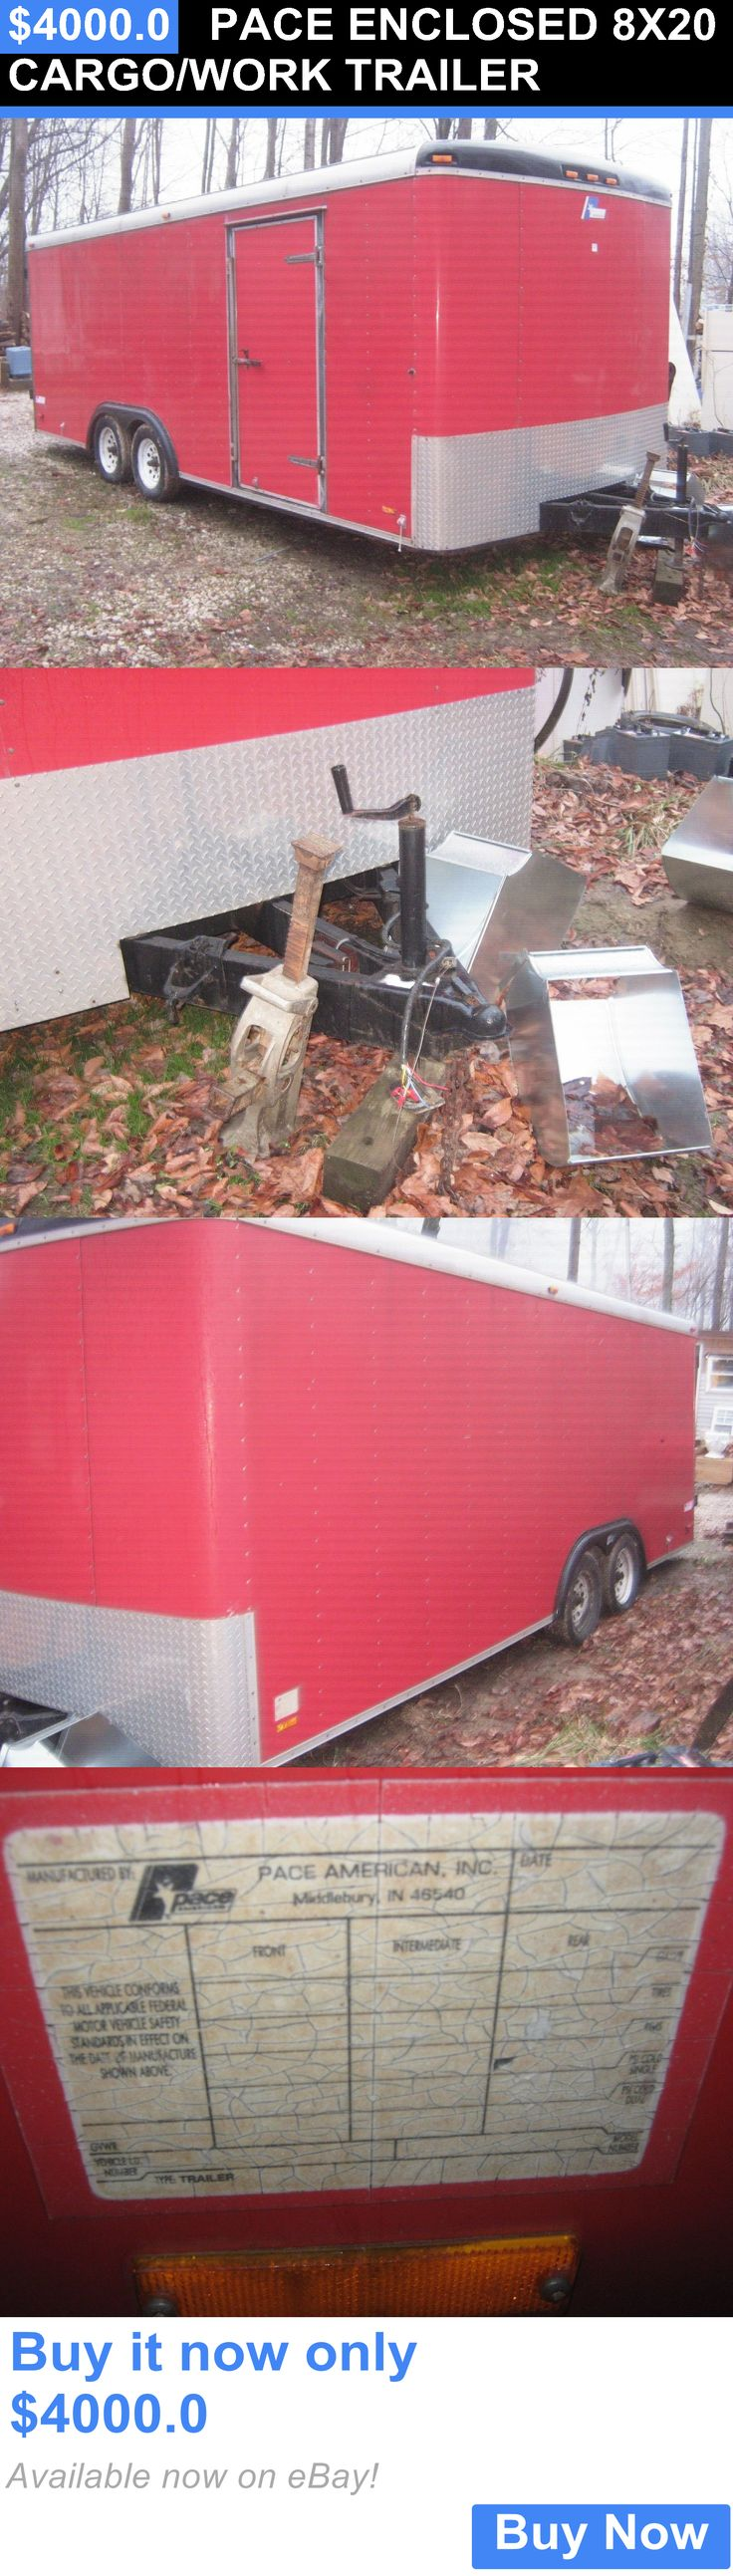 heavy equipment: Pace Enclosed 8X20 Cargo/Work Trailer BUY IT NOW ONLY: $4000.0